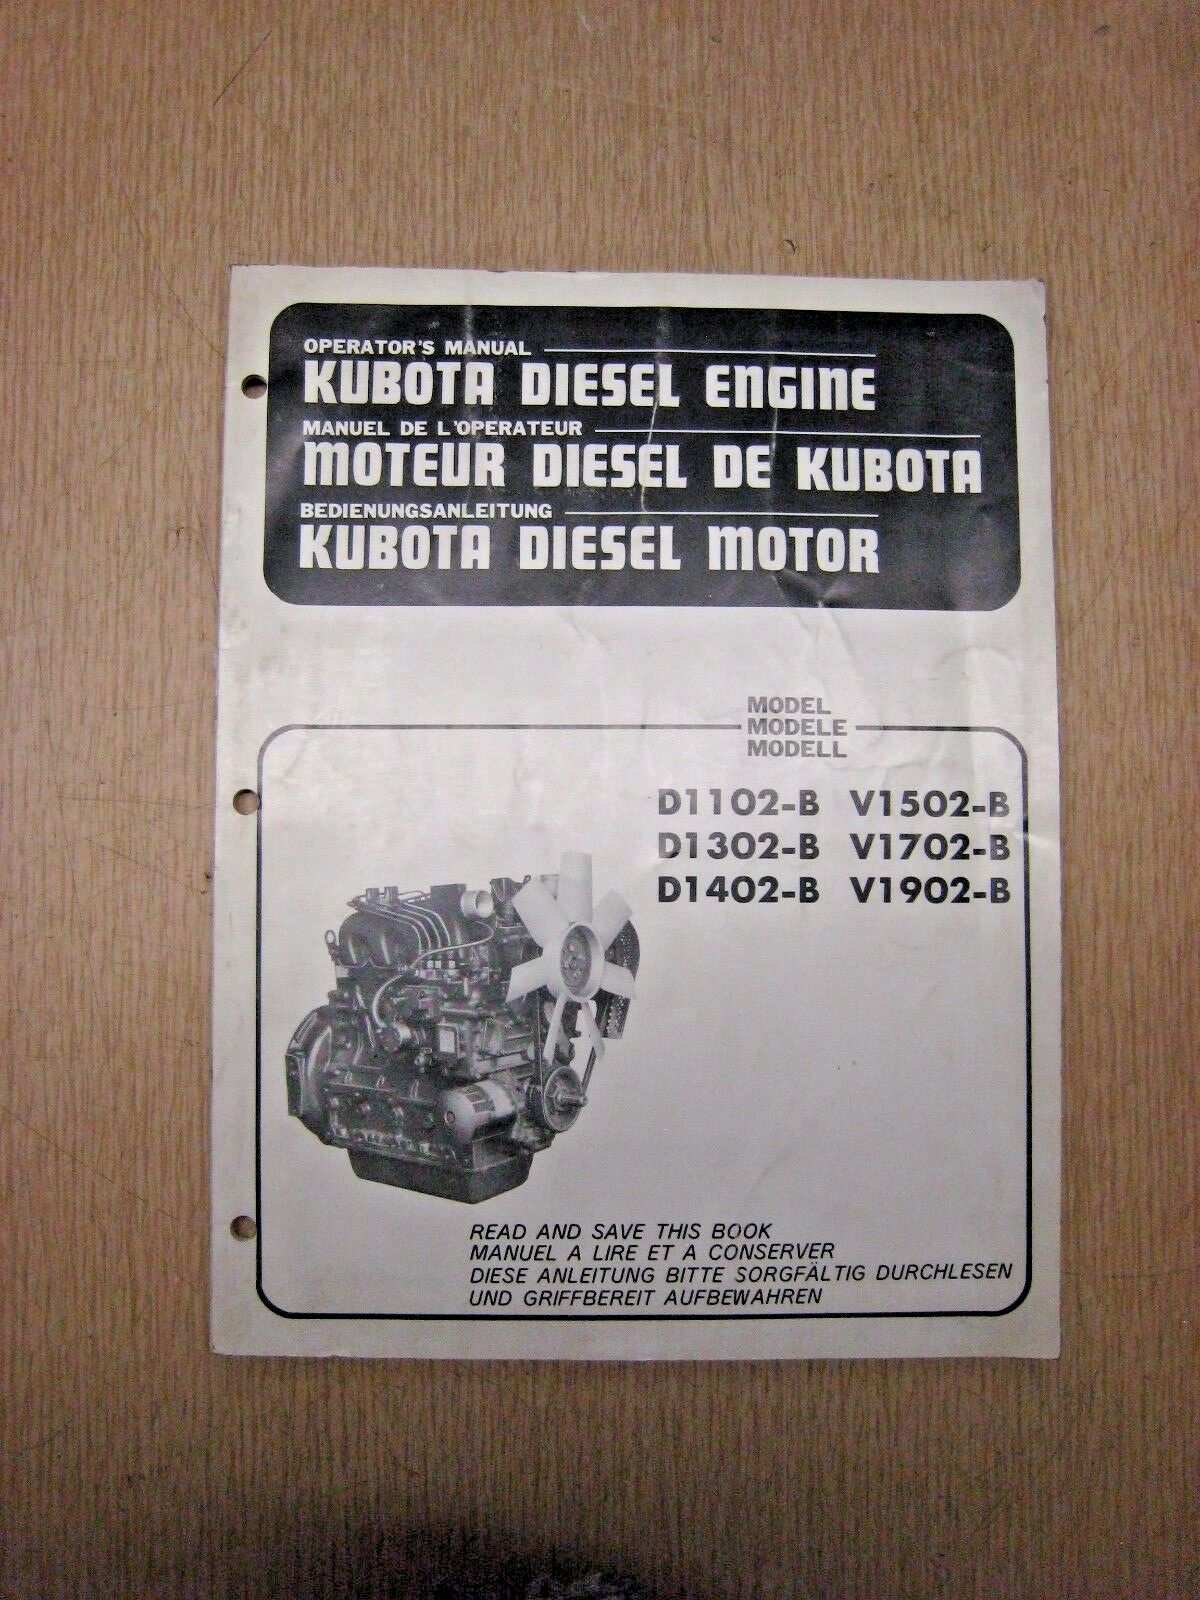 Kubota Diesel Engine Operator's Manual 1 of 5Only 1 available ...